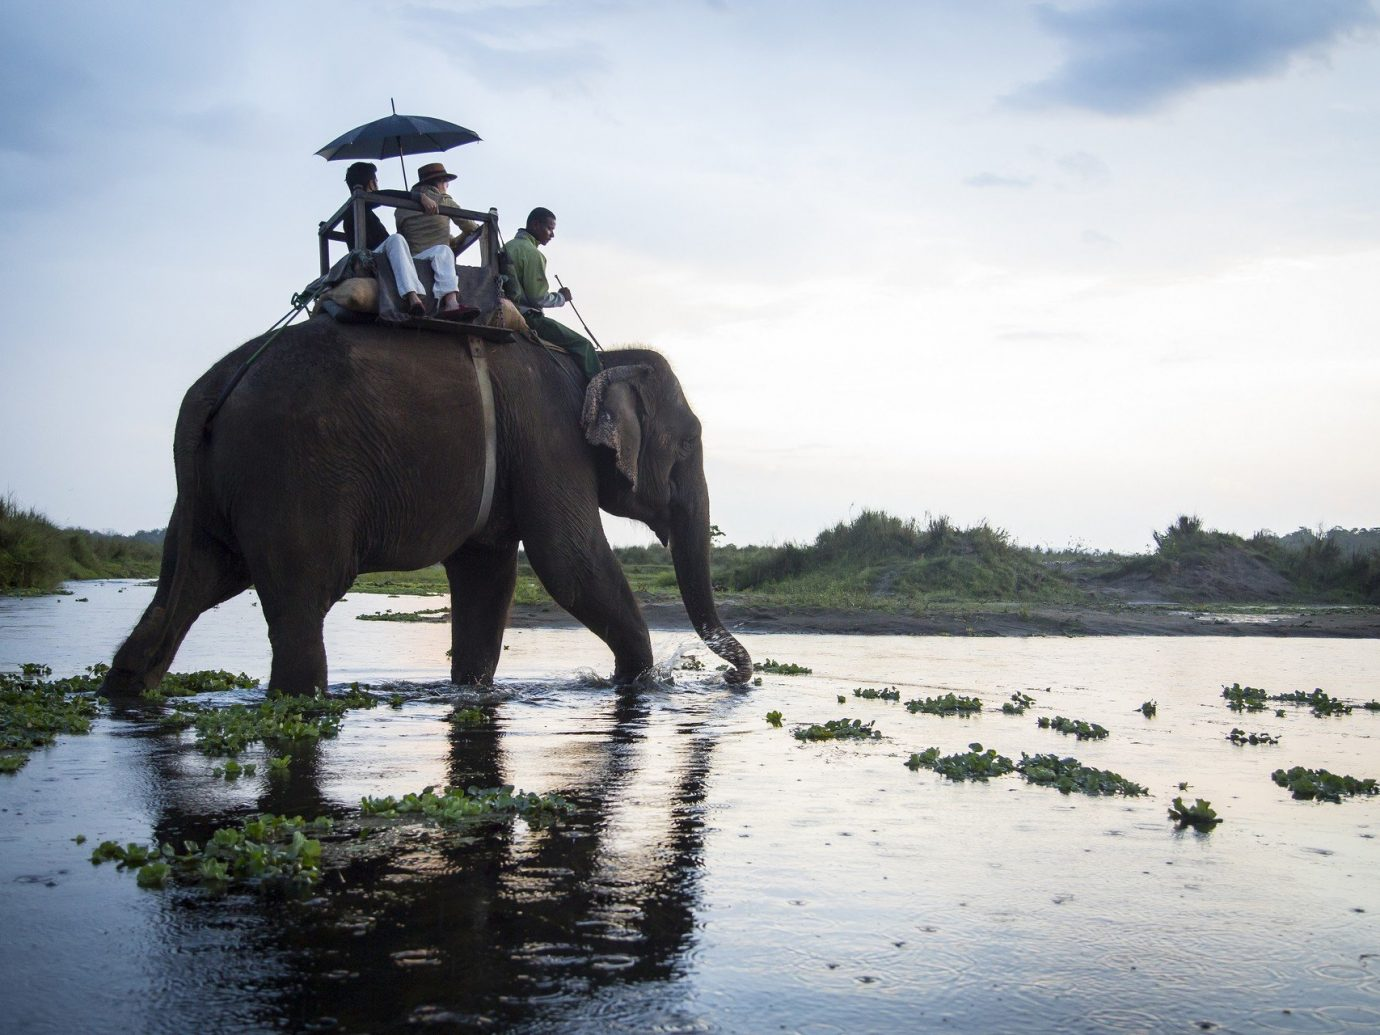 activities animals elephant elephant ride grass Greenery isolation majestic Nature Outdoors people remote stream Trip Ideas water Wildlife outdoor sky River mammal elephants and mammoths Lake Safari